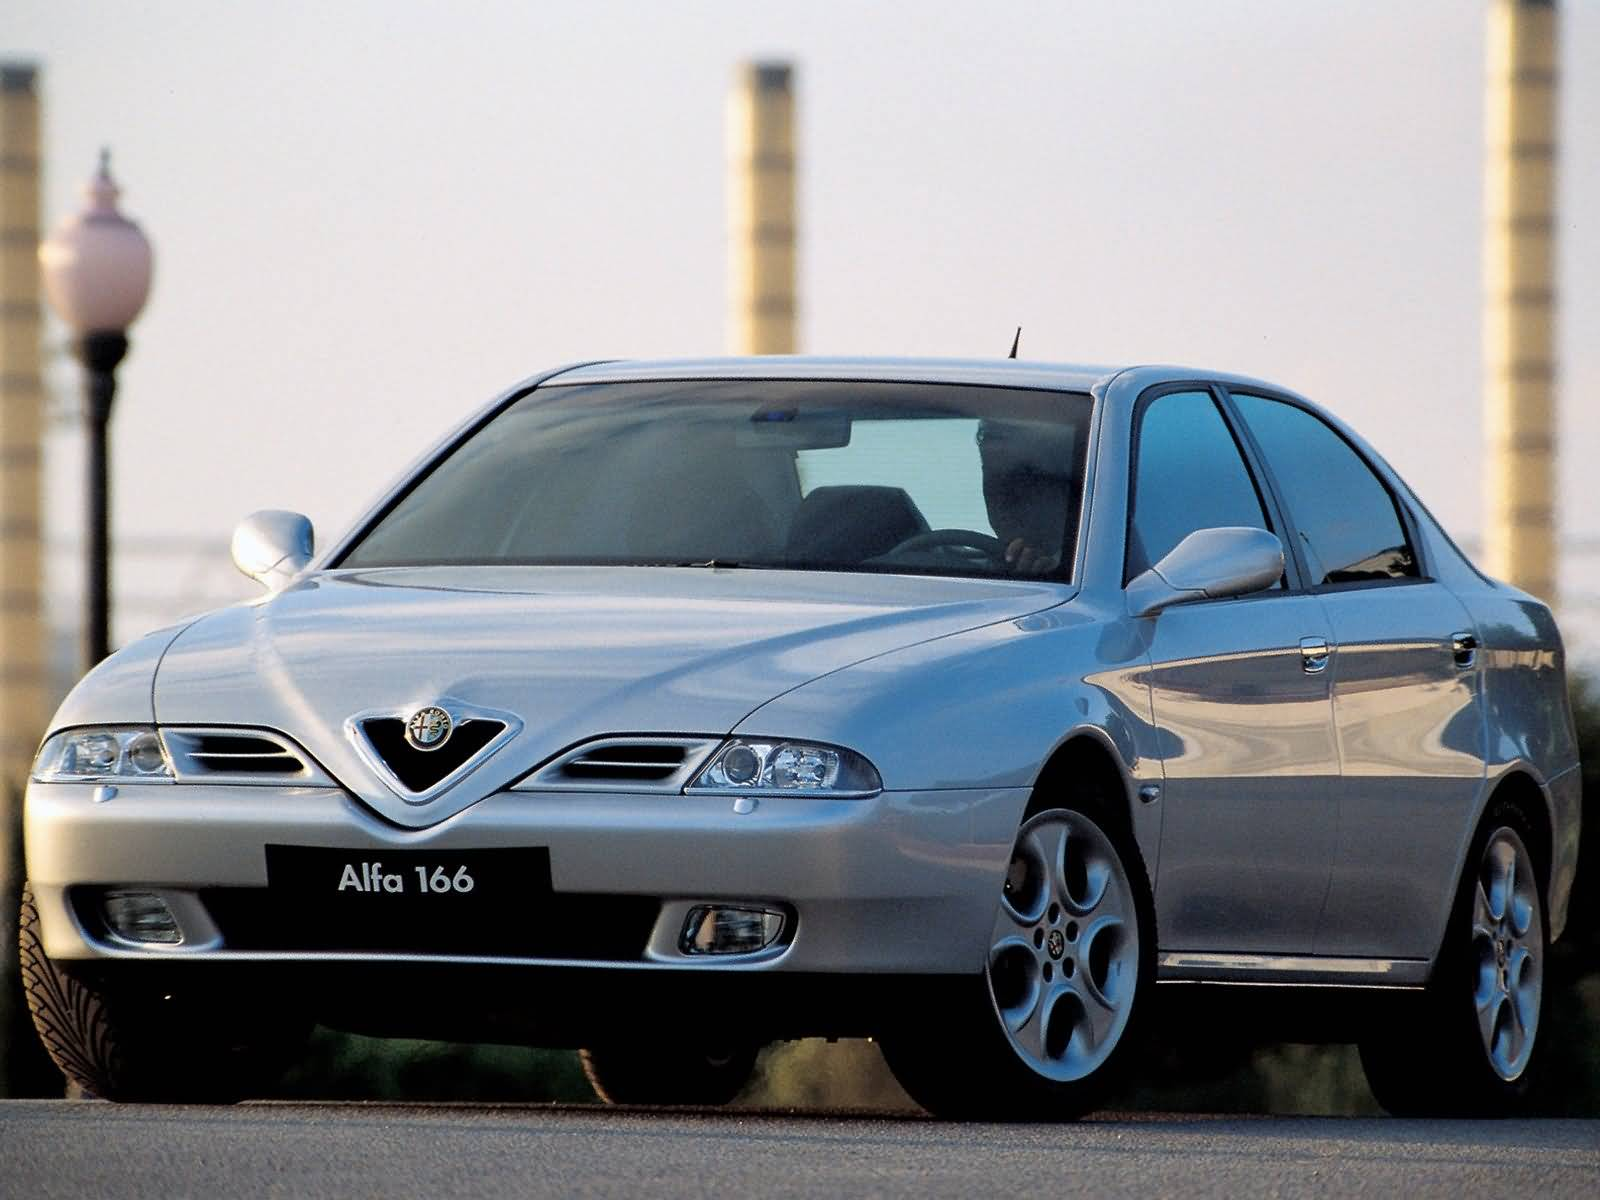 Silver colour Alfa Romeo 166 Car for wallpaper